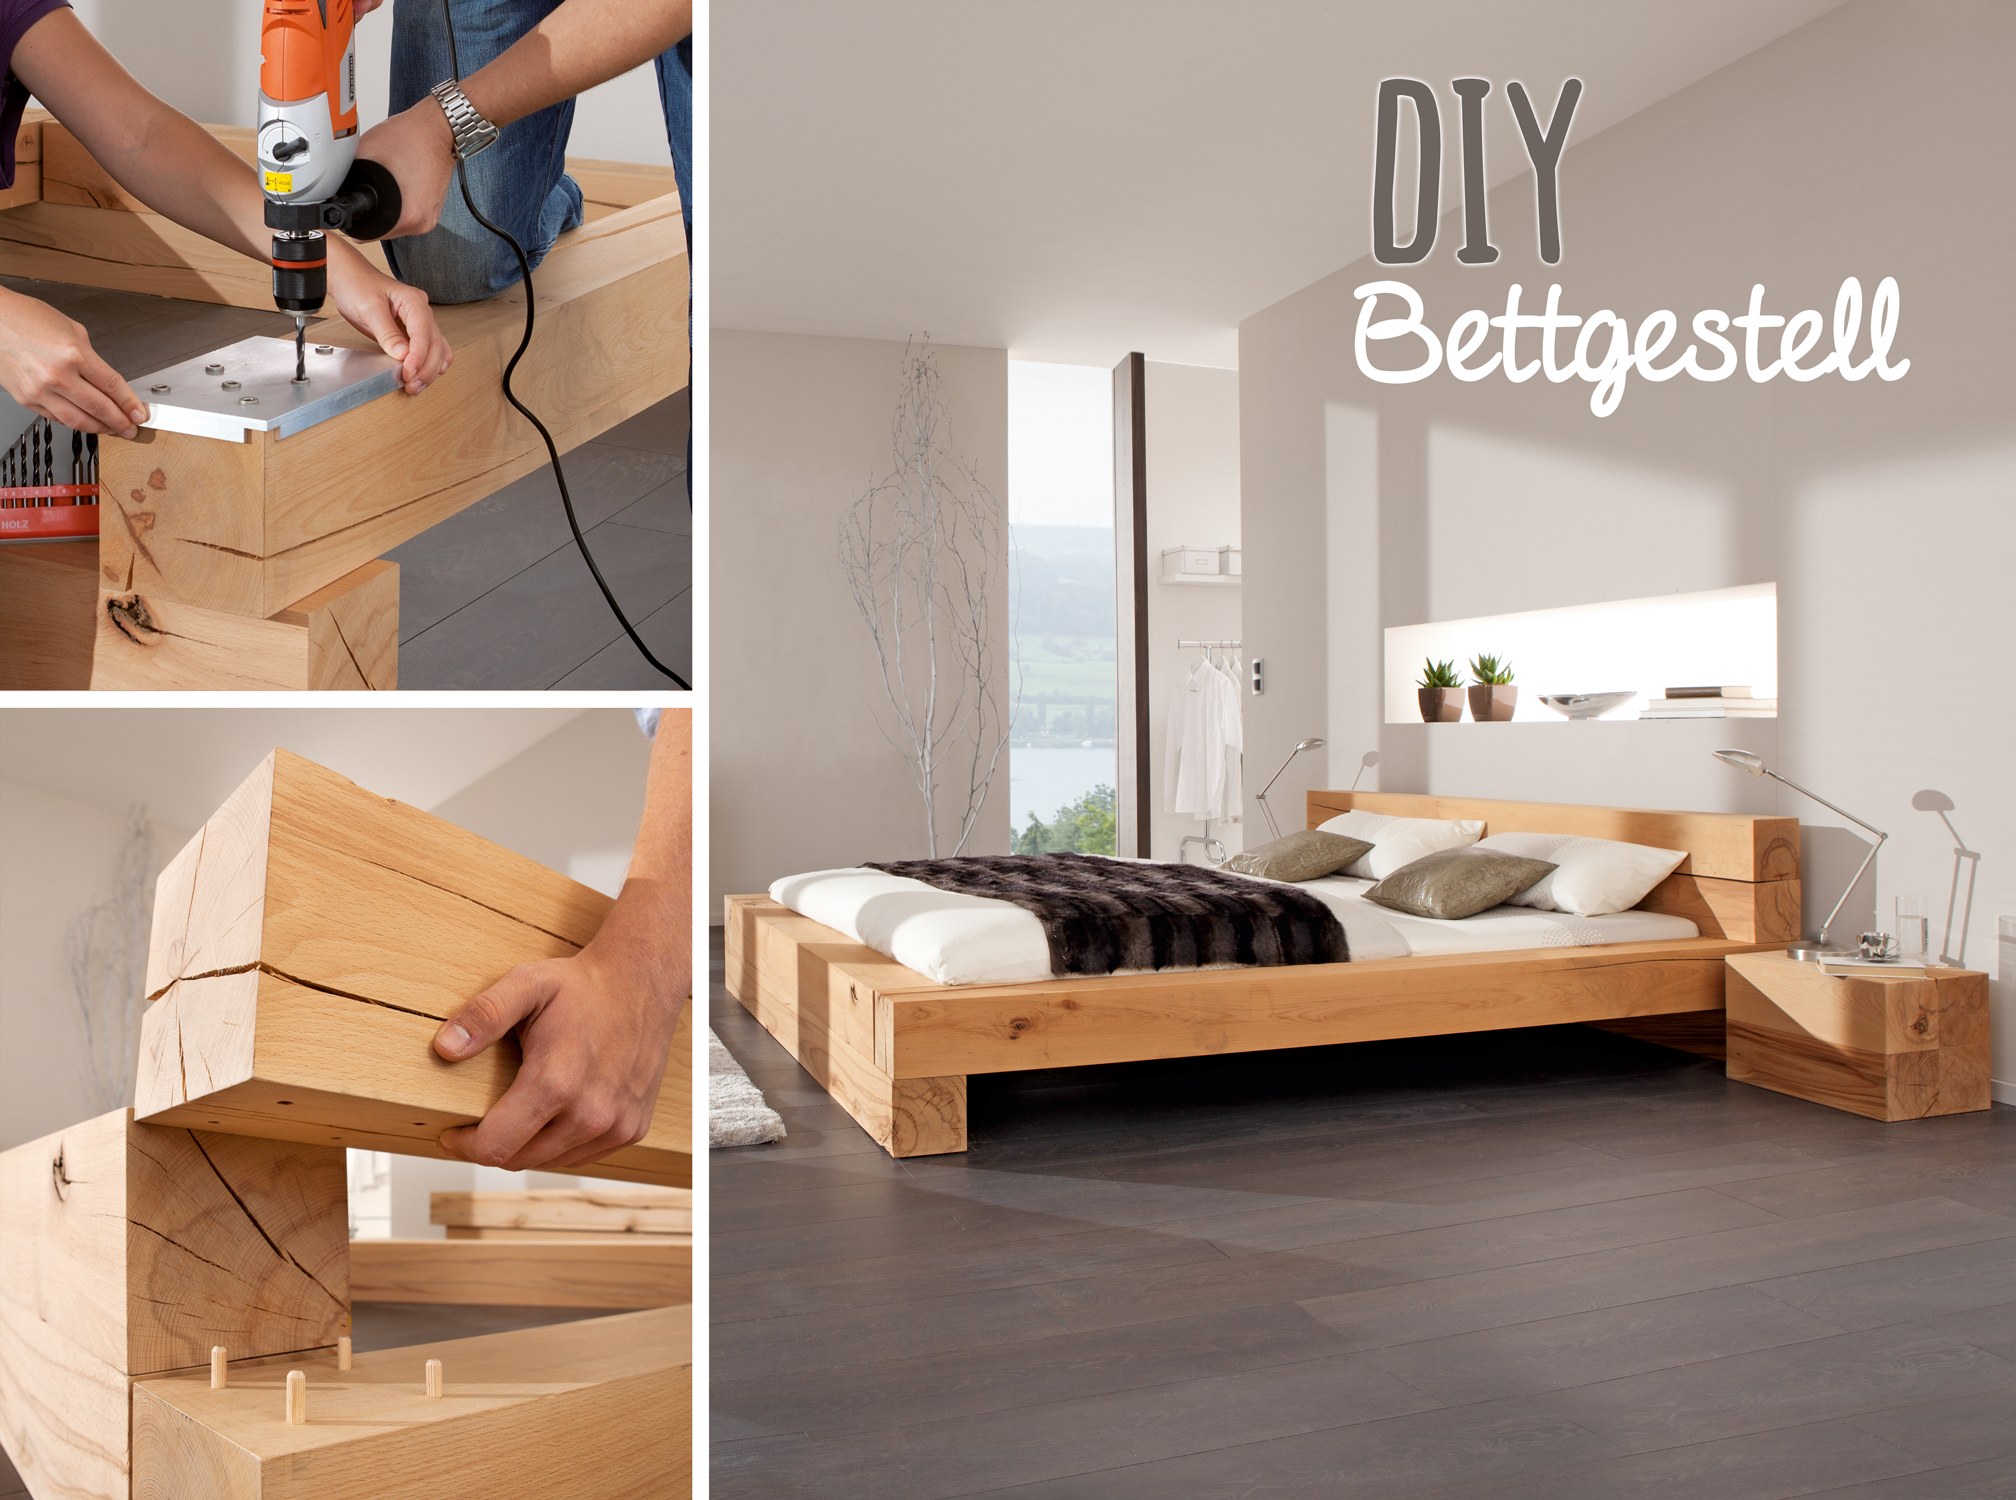 die besten 25 holzbalken bett ideen auf pinterest altholz betten bett rustikal holz und. Black Bedroom Furniture Sets. Home Design Ideas